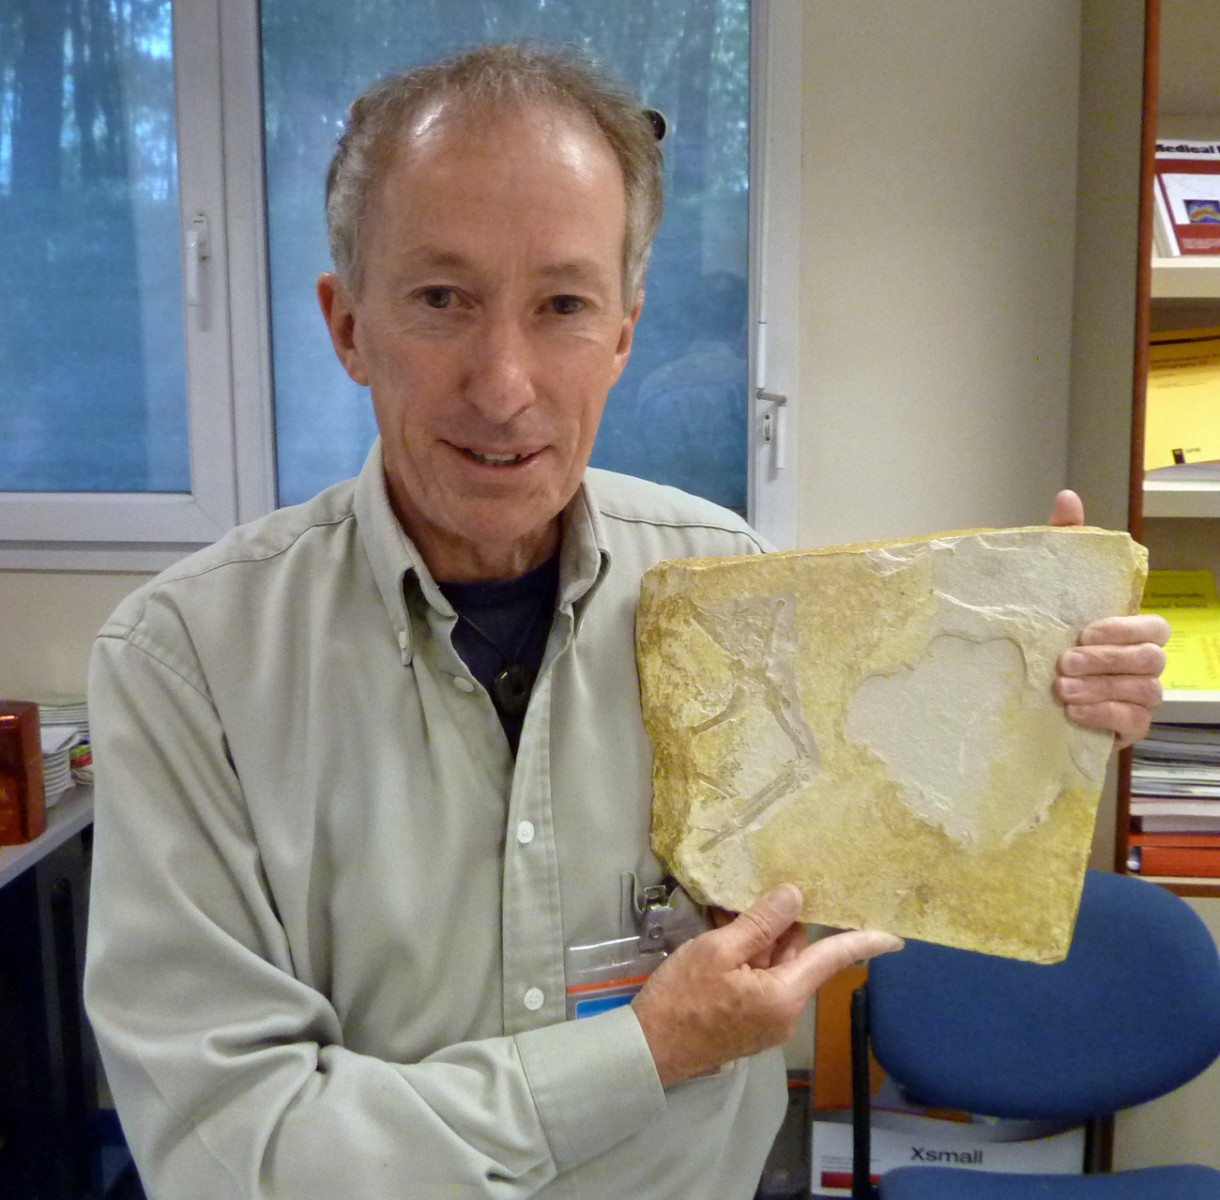 Dr John Nudds with Archaeopteryx fossil specimen at the European Synchrotron in Grenoble